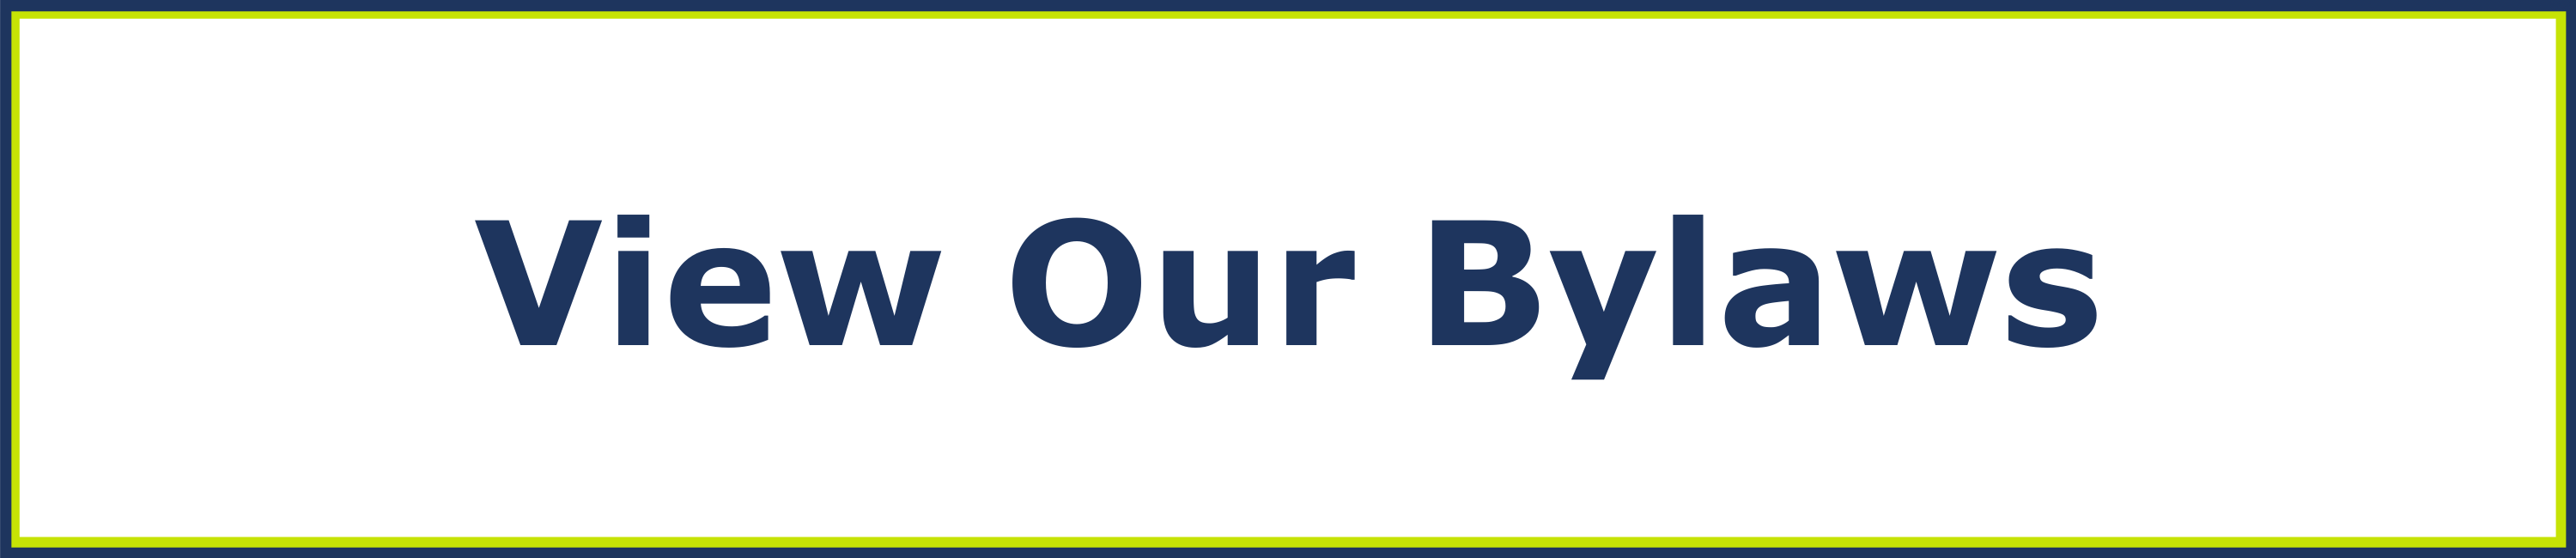 View our bylaws.